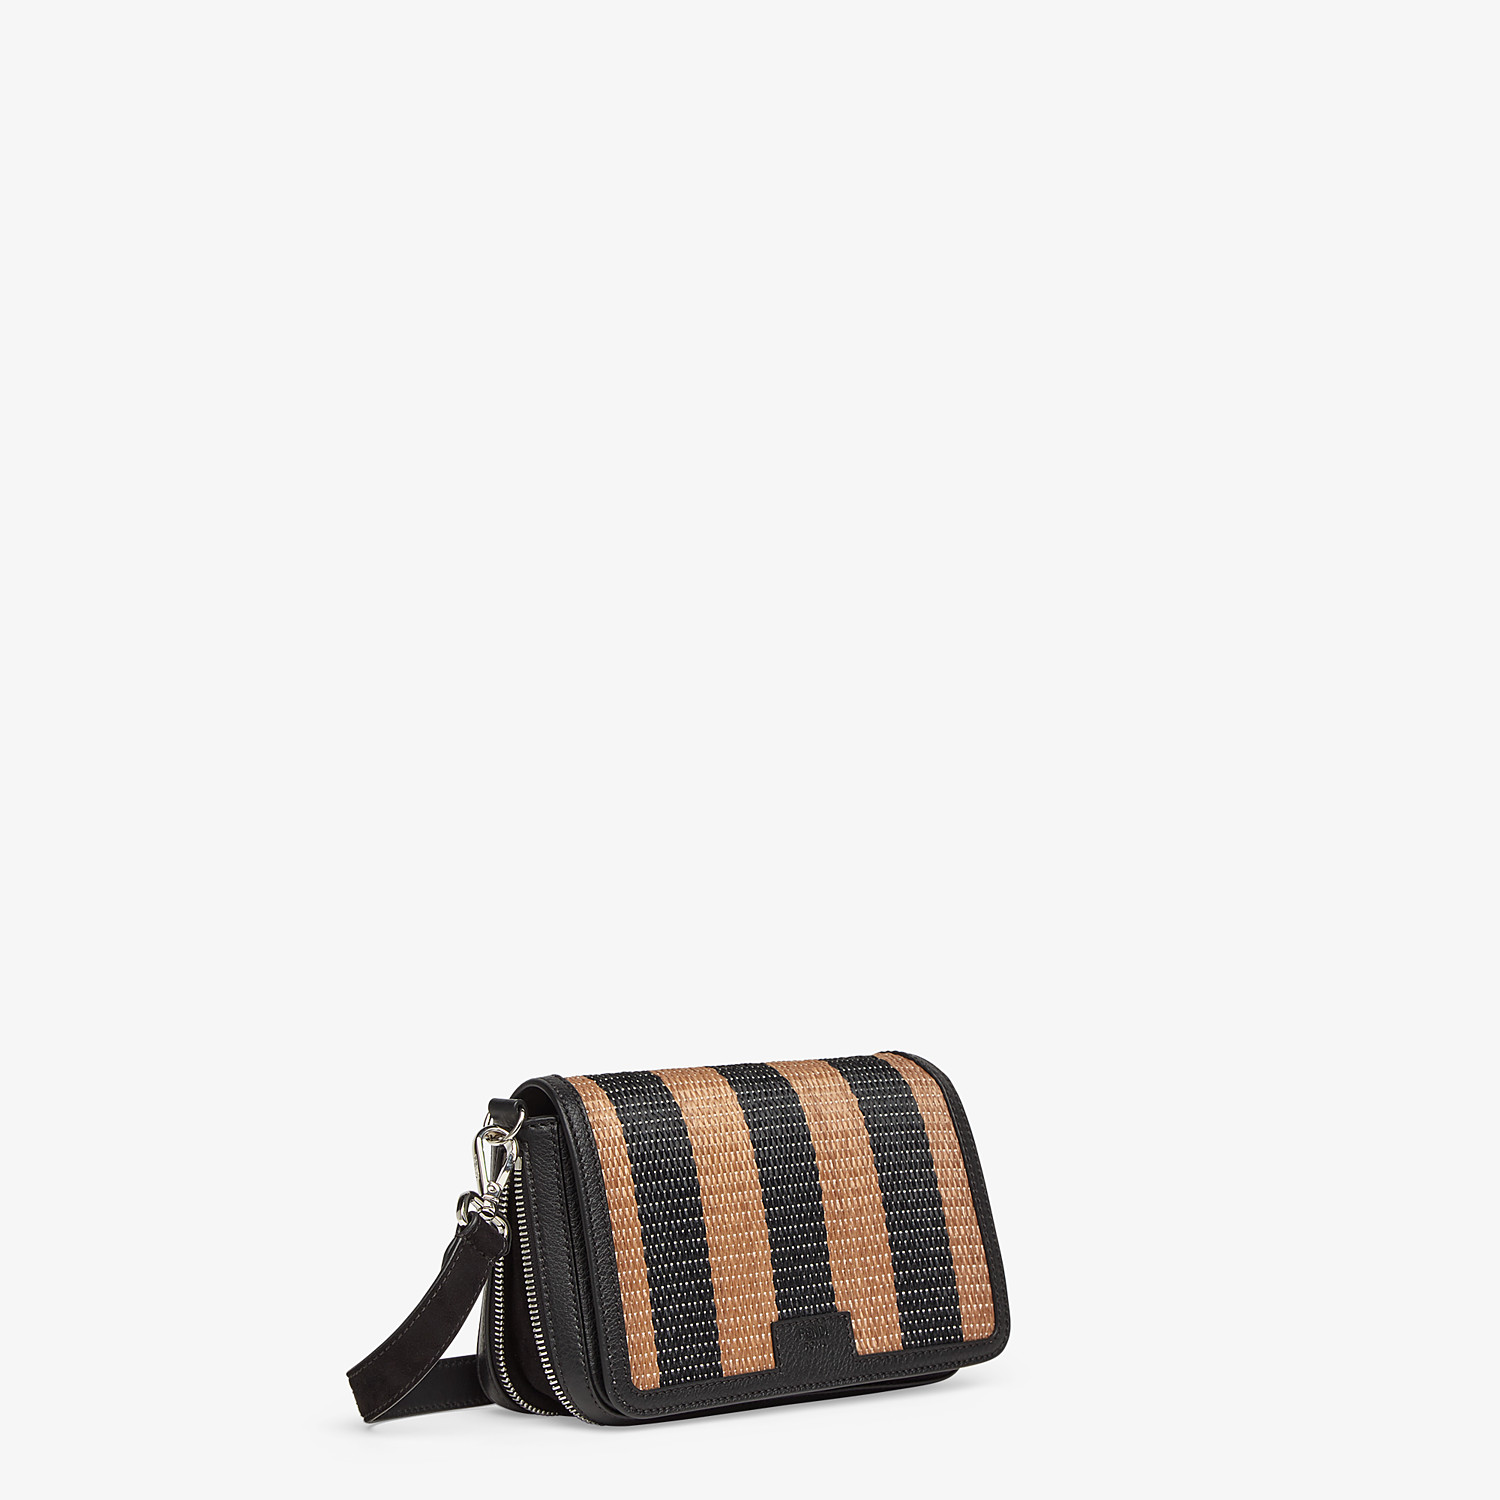 FENDI FLAP BAG - Brown raffia bag - view 3 detail